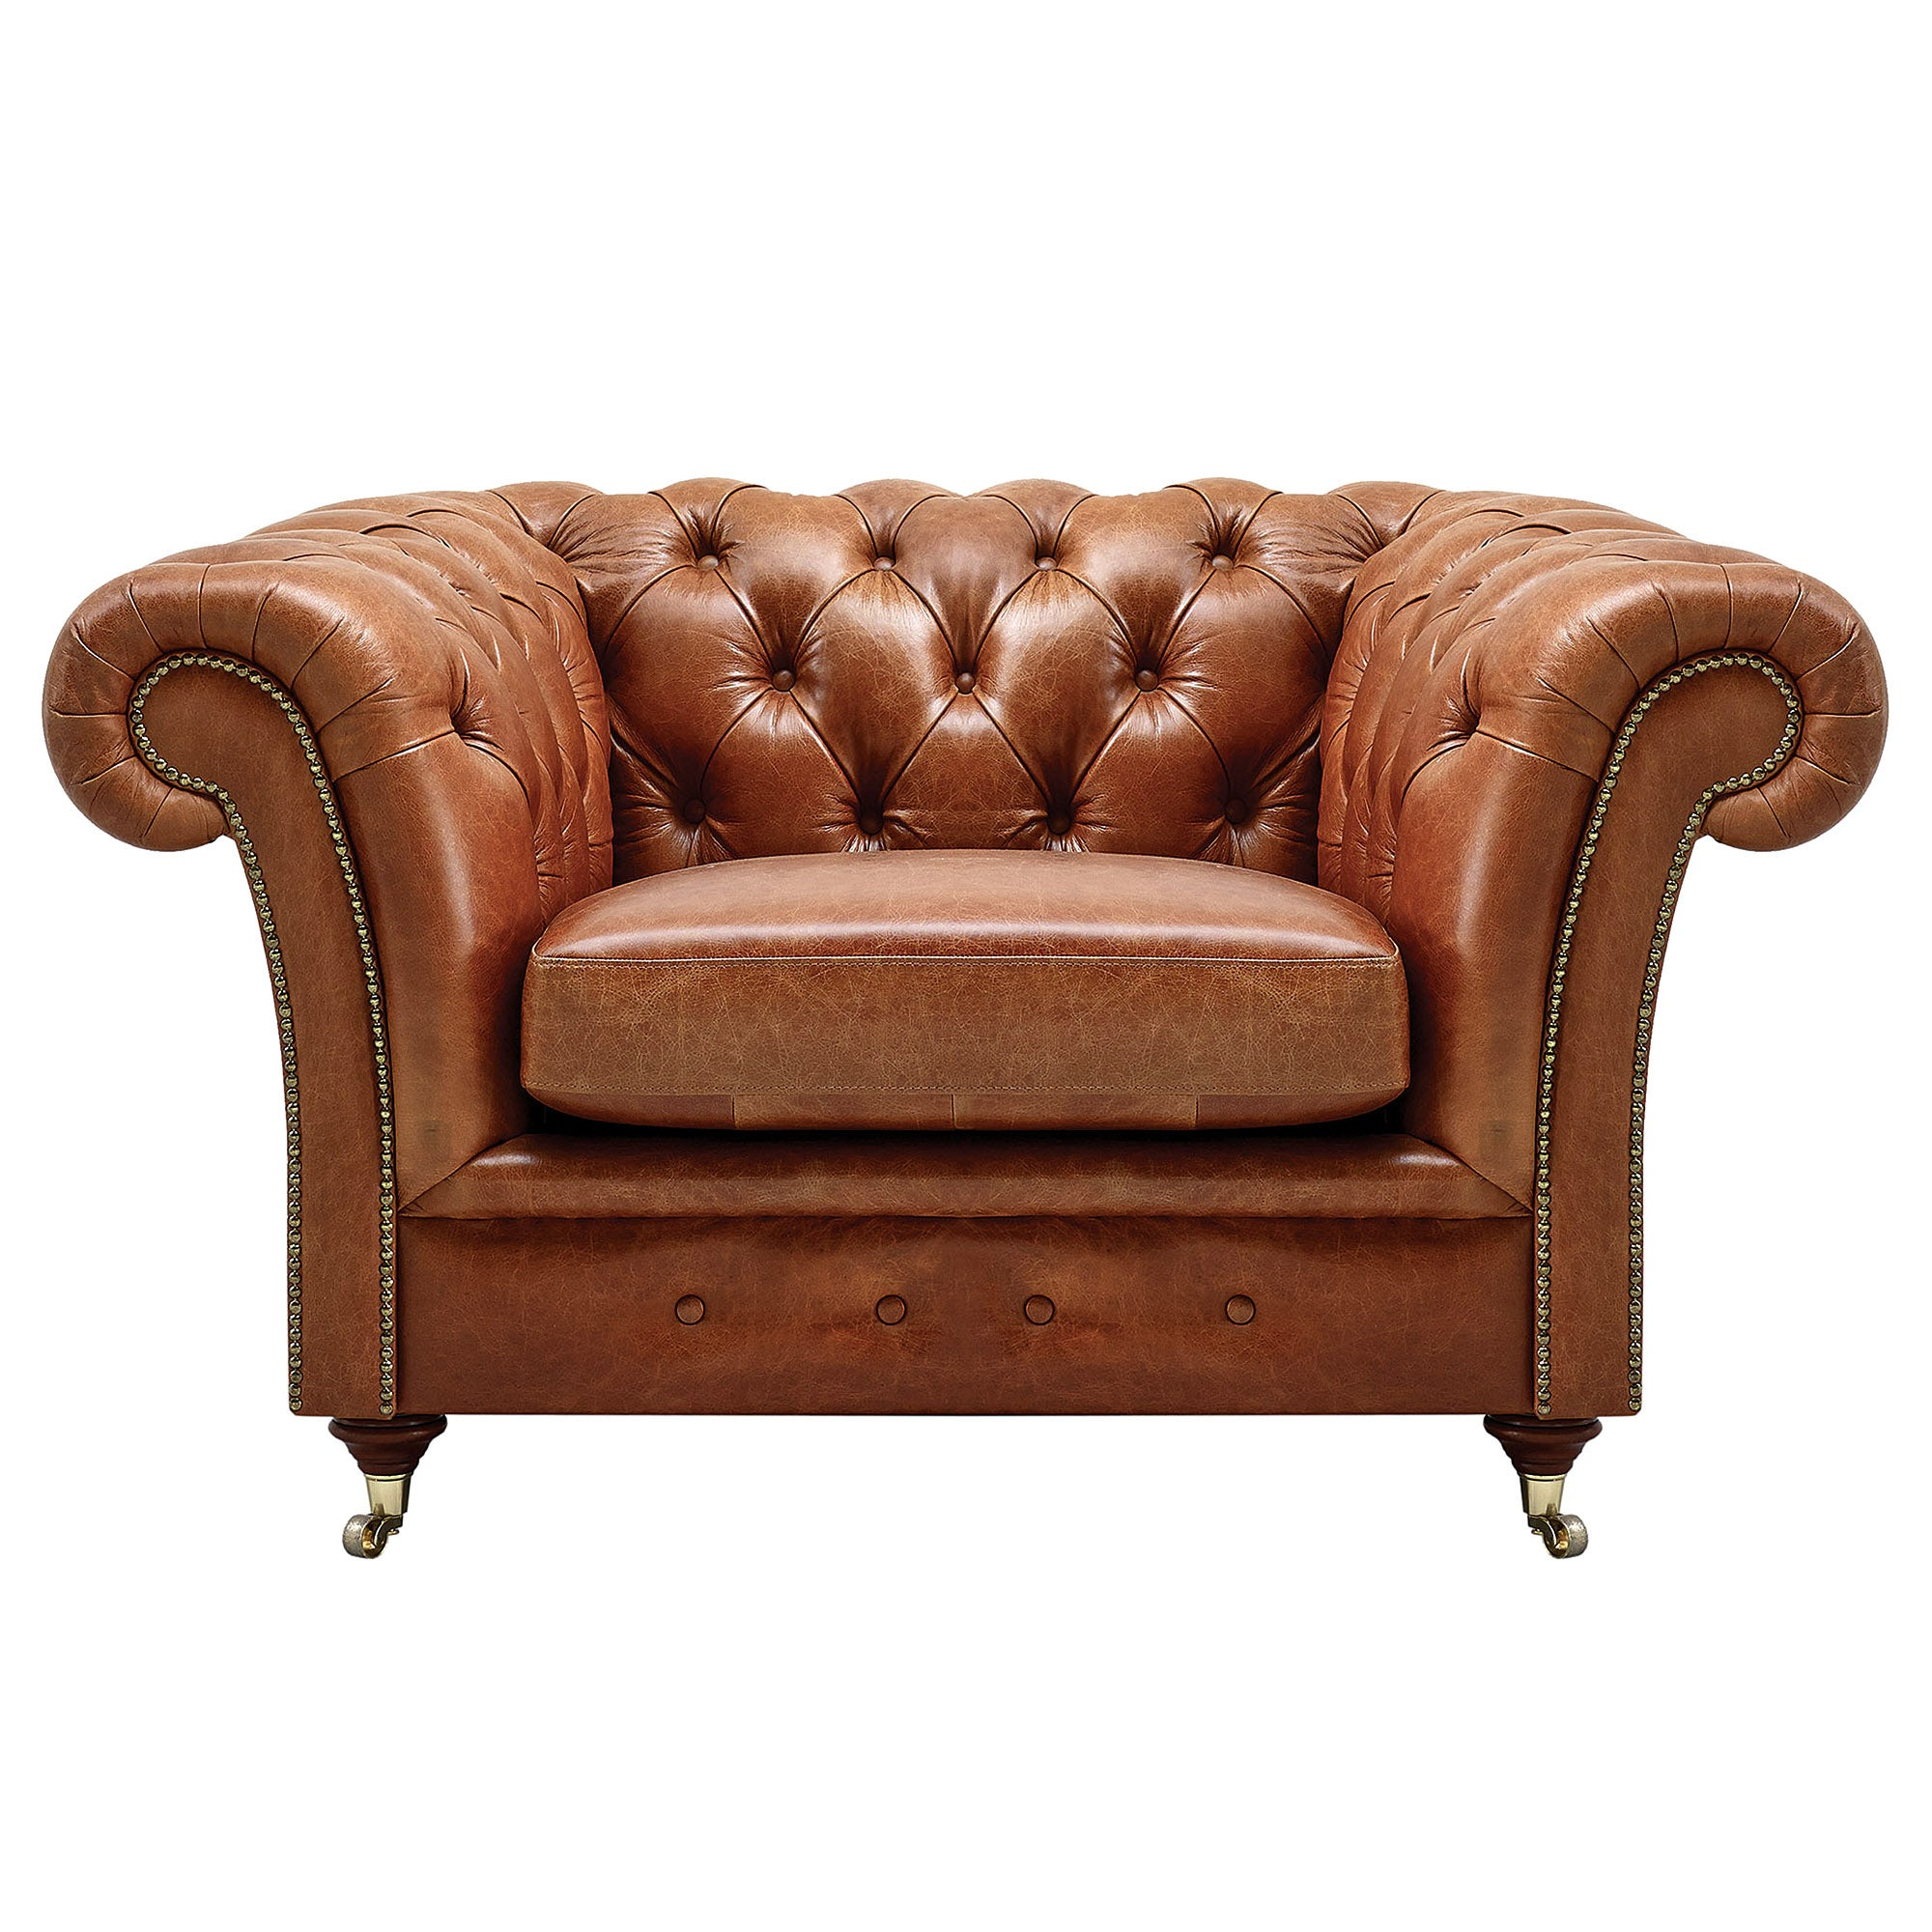 Chesterfield Collection Old English Leather Armchair